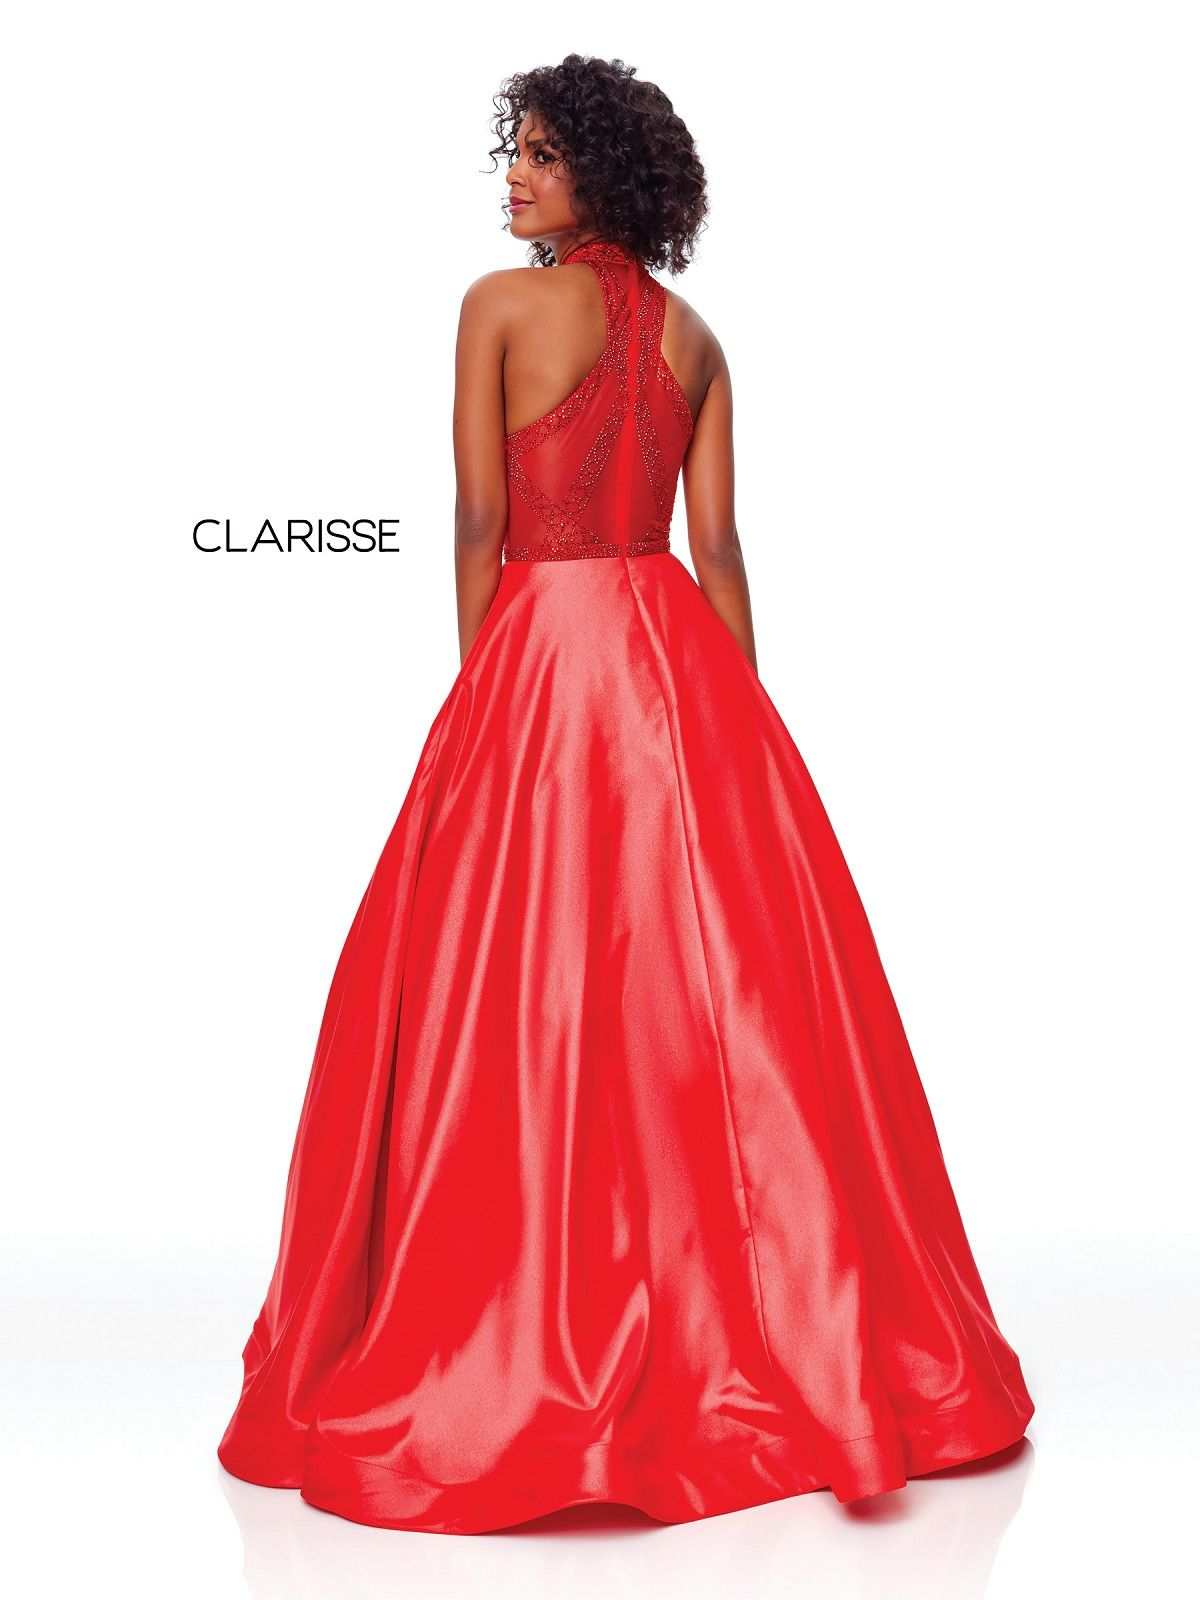 830570380a0 Clarisse Dress 3753 Shimmery Halter Gown With Pockets